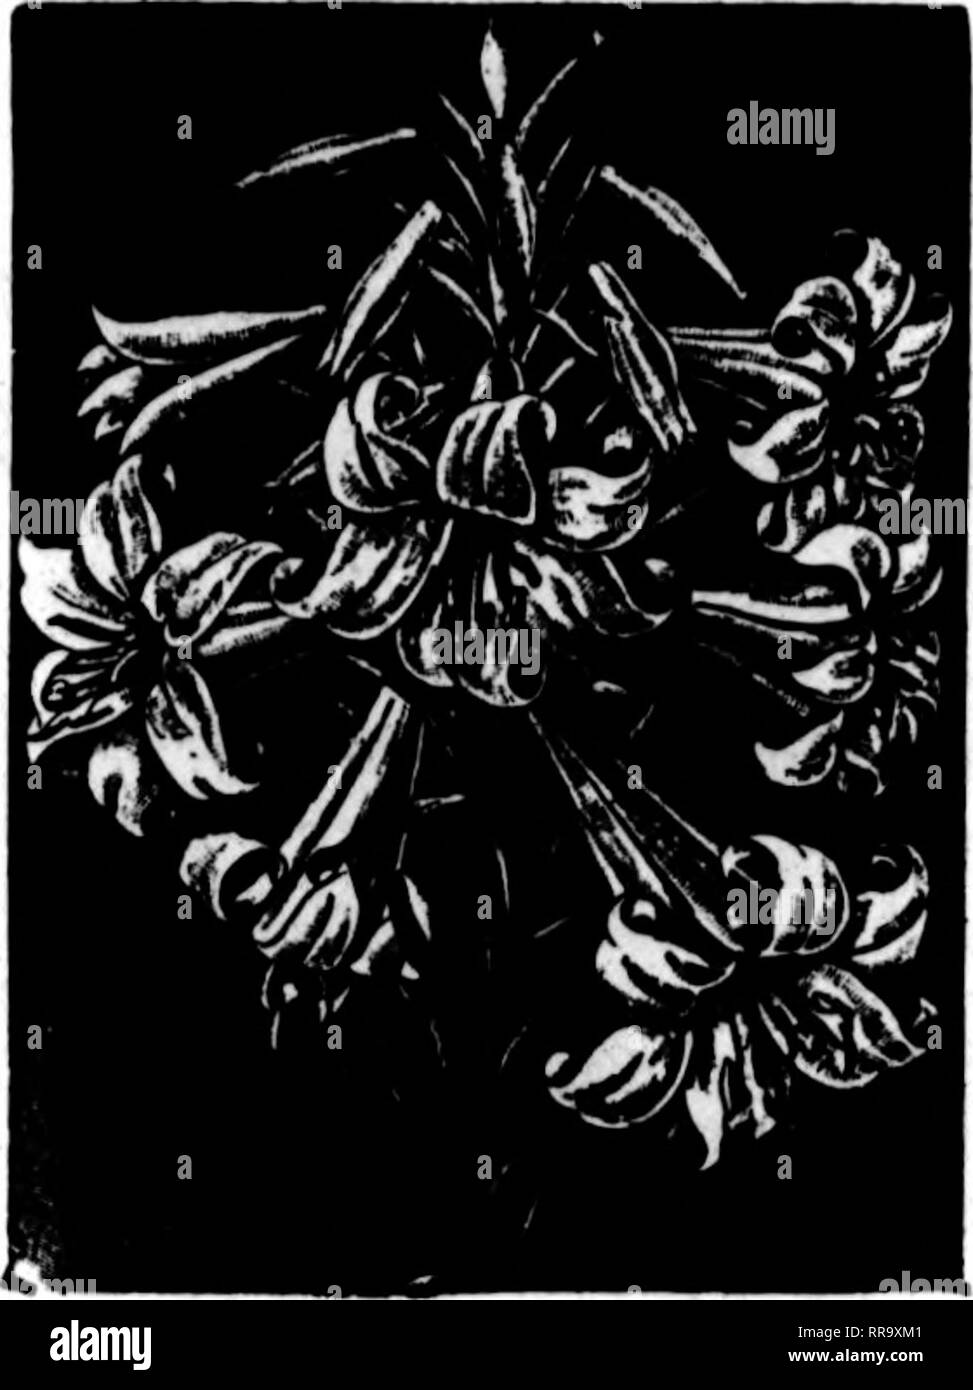 . Florists' review [microform]. Floriculture. Kydranareaa—A flne and large stock of French varieties; we have never had them DBtter; full of flowers; 6-lnch, $1.00, $1.25. $1.50 and $2.00; 7-lnch. $2.50 an.l $3.00 each. UUnm laaltlfloram—Extra flne plants running from 5 to 10 buds per plant, medium and tall; 5%-inch pots at 25c per bud and bloom. No lilies sold separately. Clnerariaa—We are the largest grow- ers of these beautiful plants in Philadelphia and have all the best varieties, with all colors of the rain- bow; 5-inch, 40c; 5%-inch, 50c; 6- Inch, 75c and $1.00 each. Bomb — Fine heavy s - Stock Image